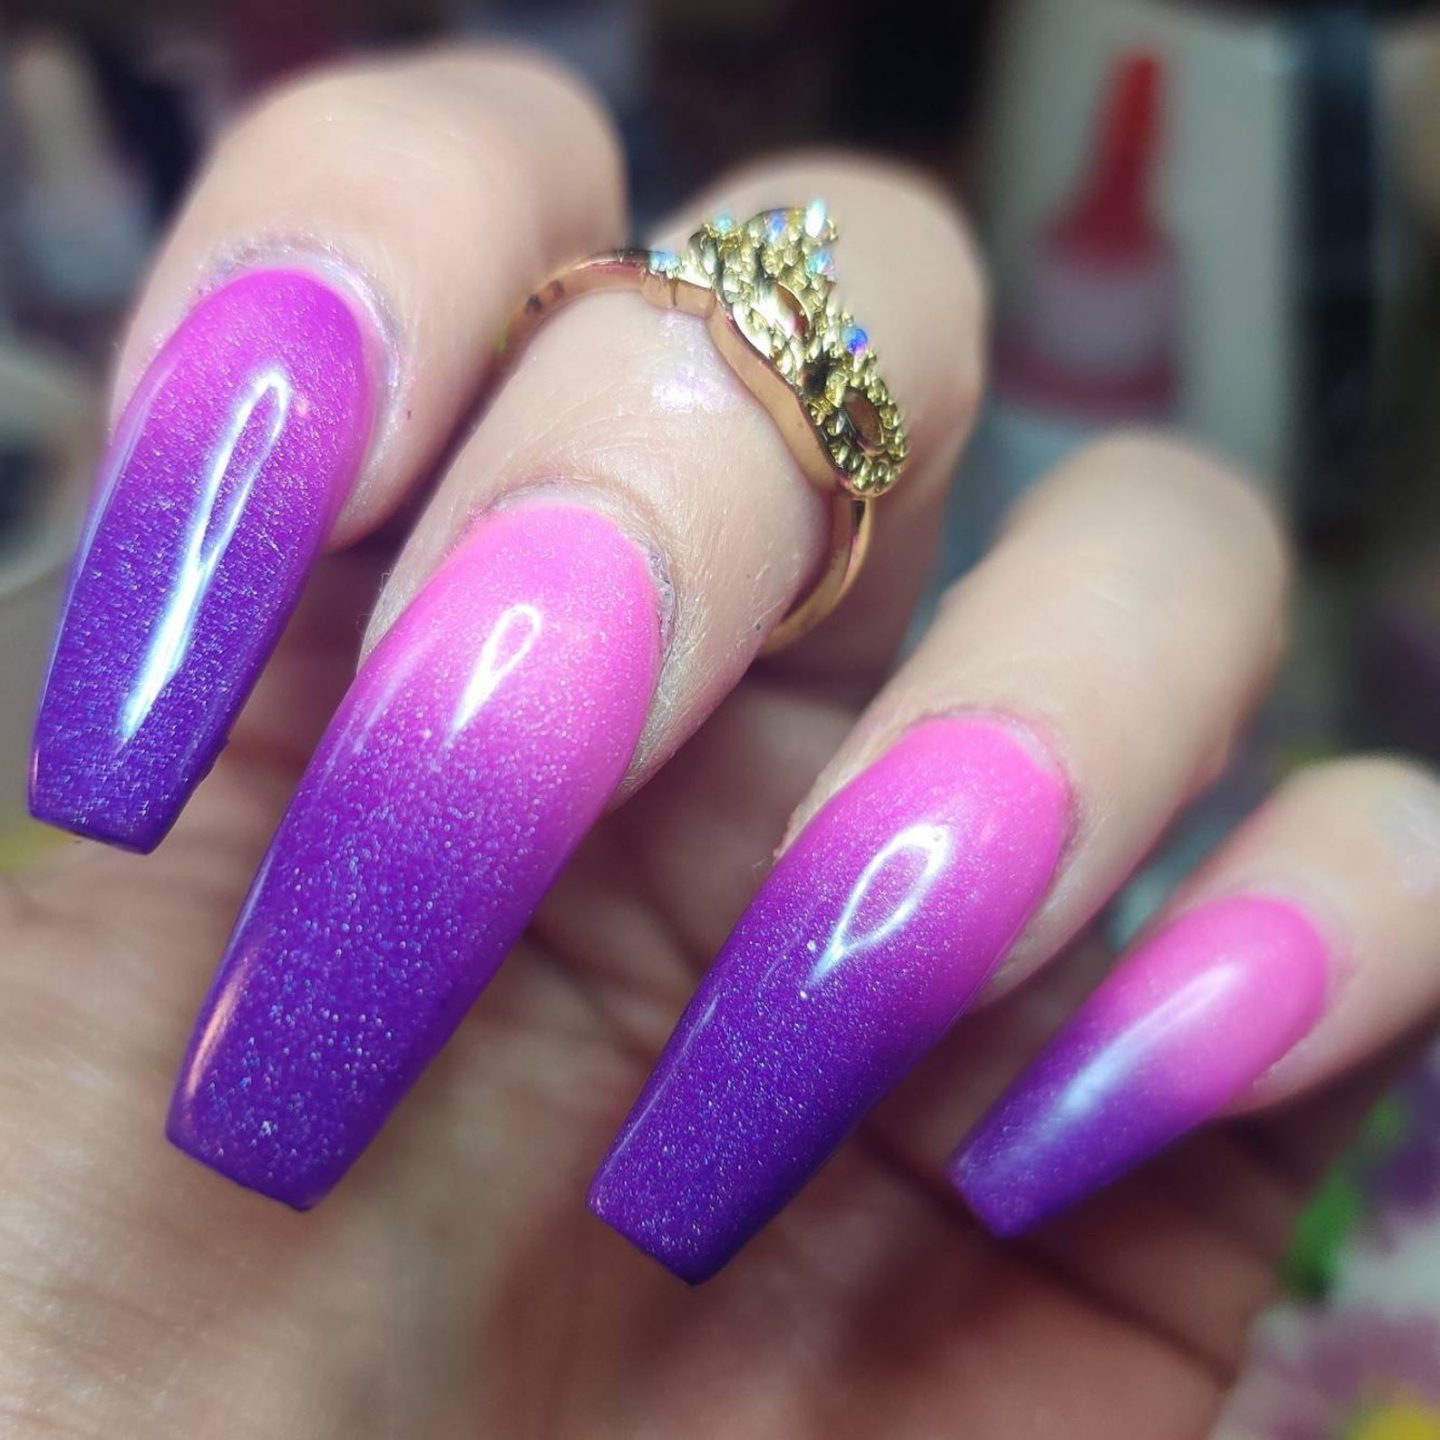 Pink and purple temperature changing nail designs with glitter